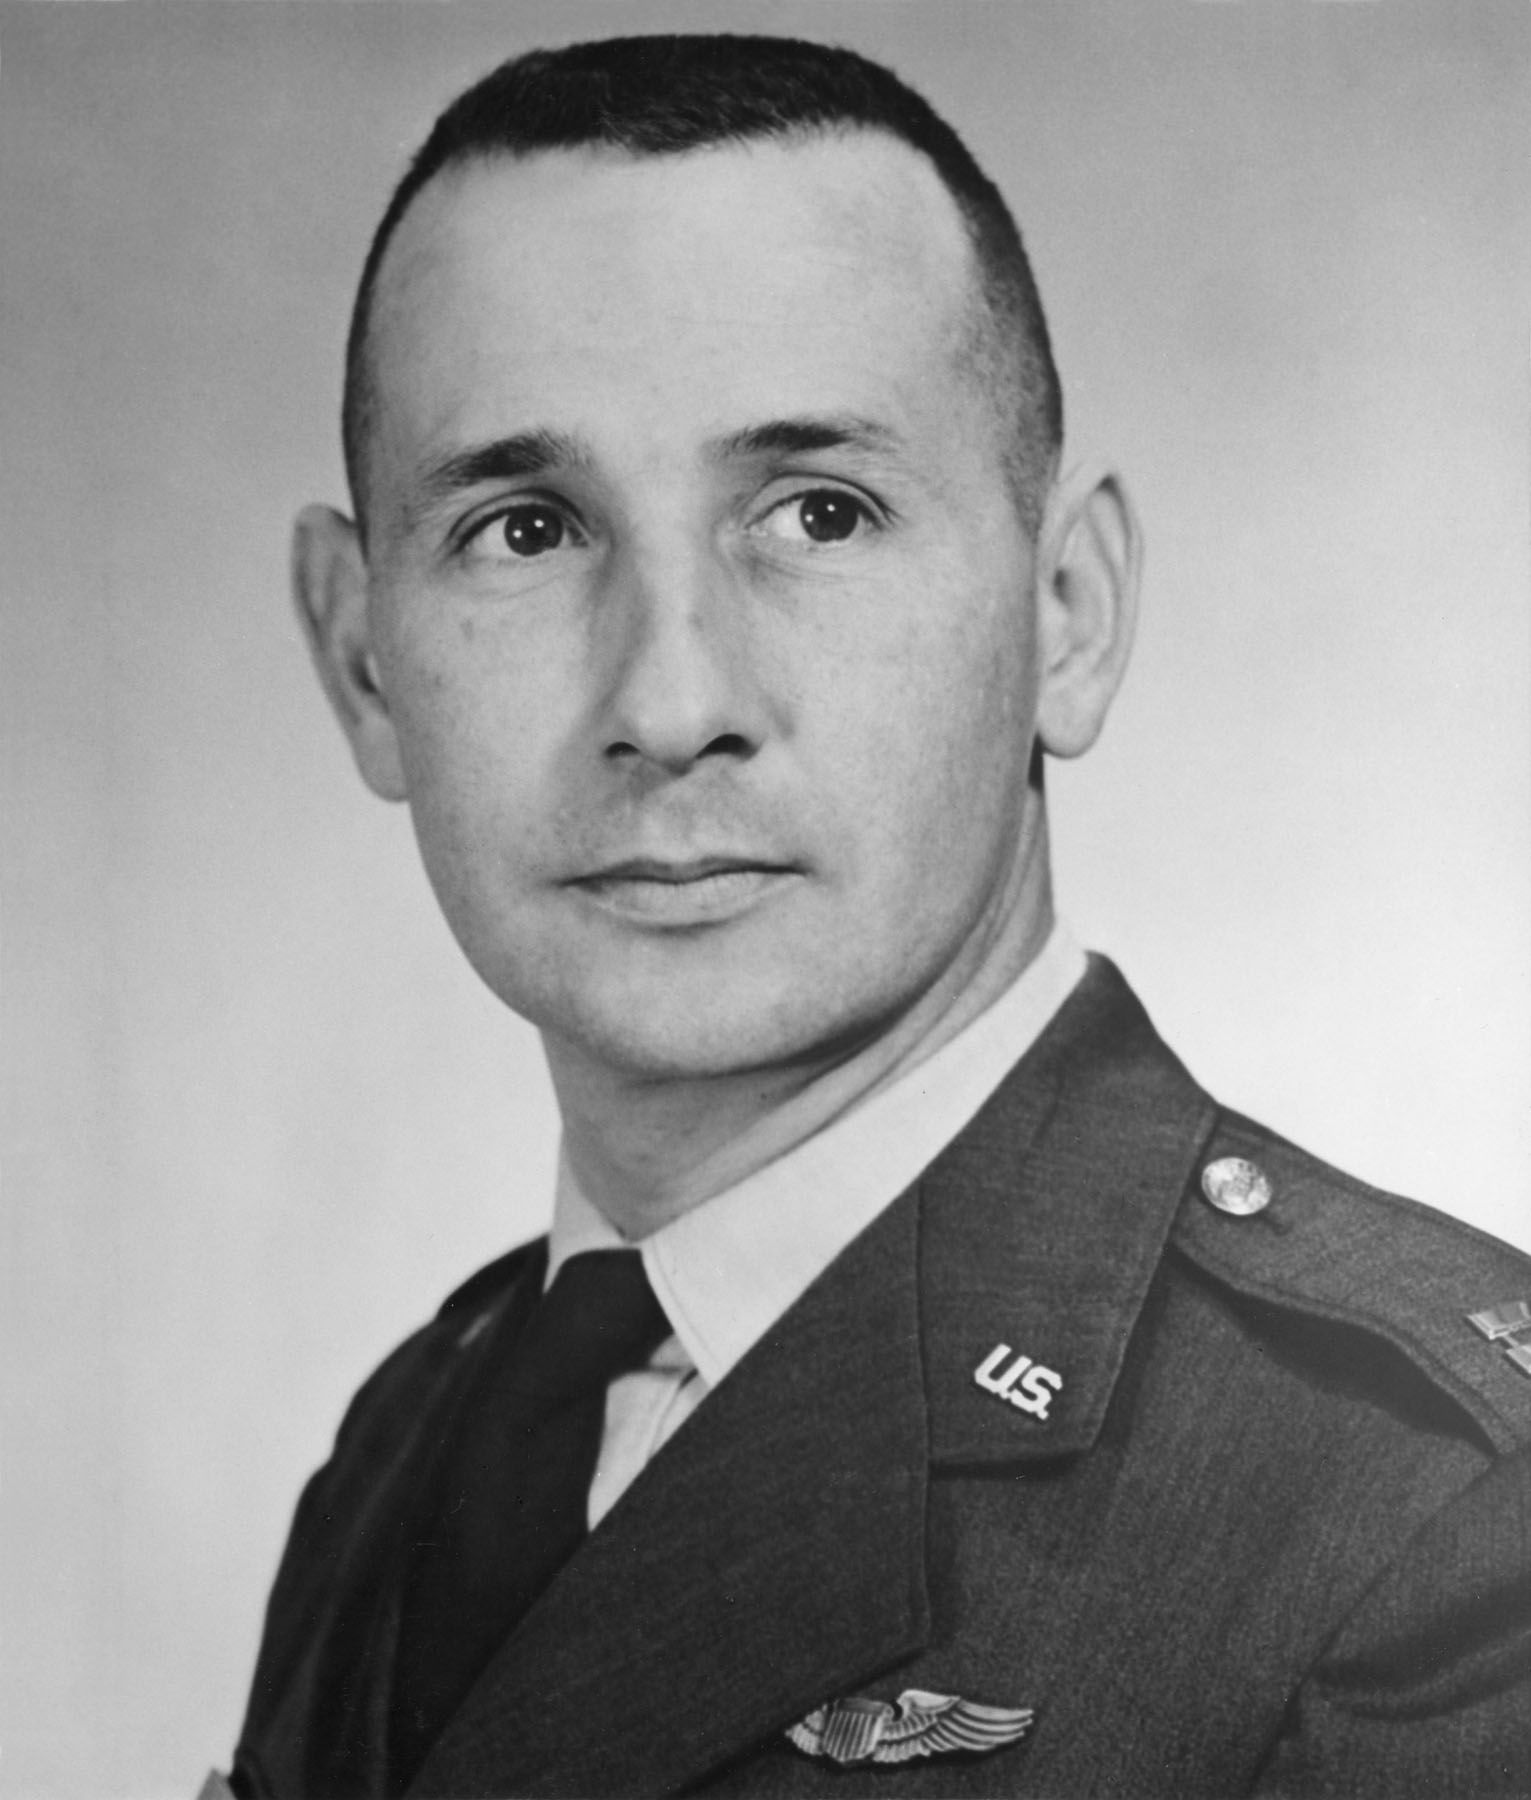 Captain Hilliard Almond Wilbanks, United States Air Force